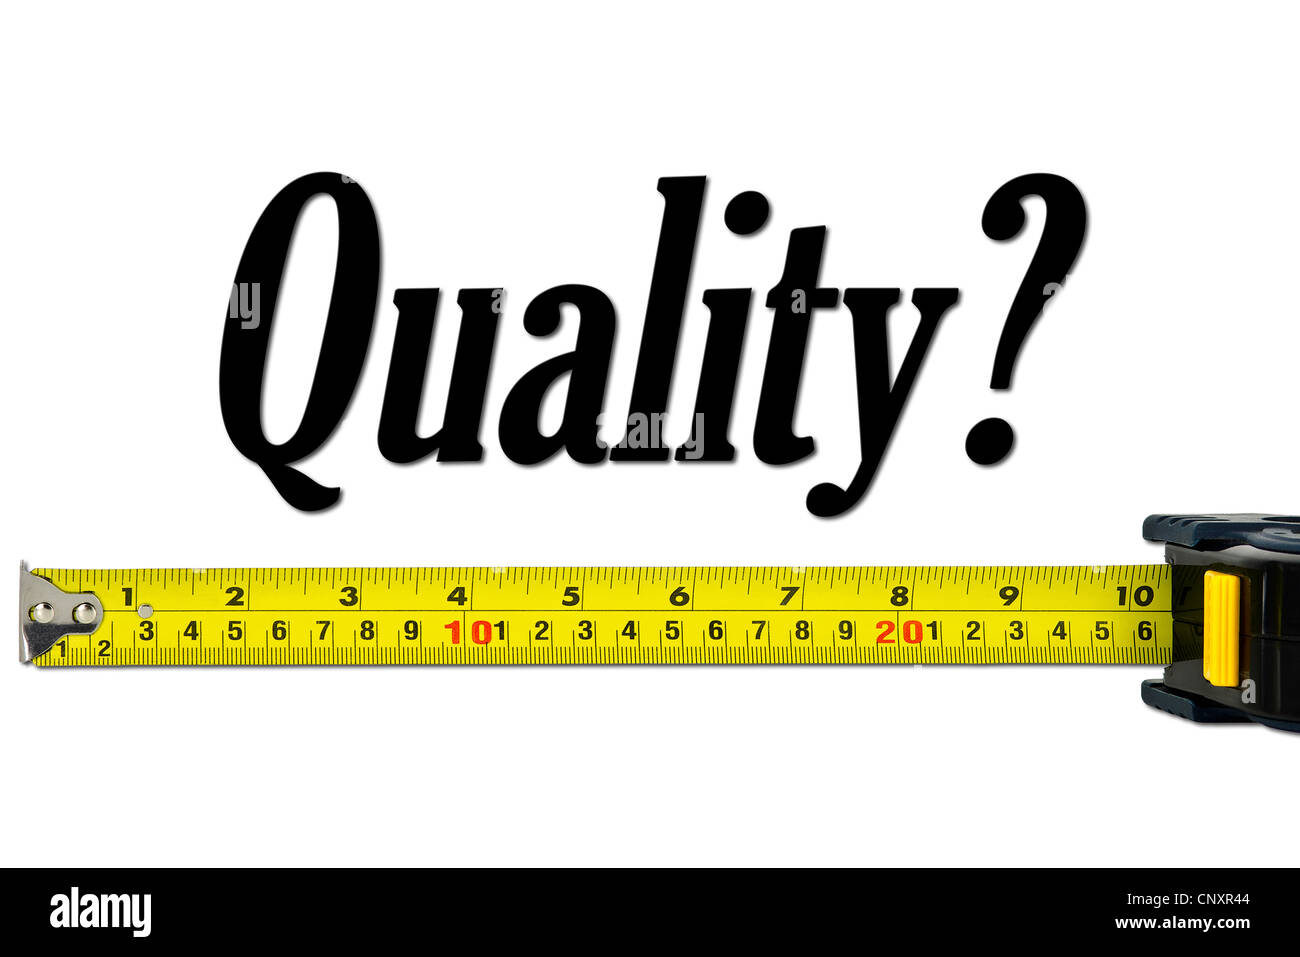 Quality Control And Measurement Concept With A Tape Measure - Stock Image